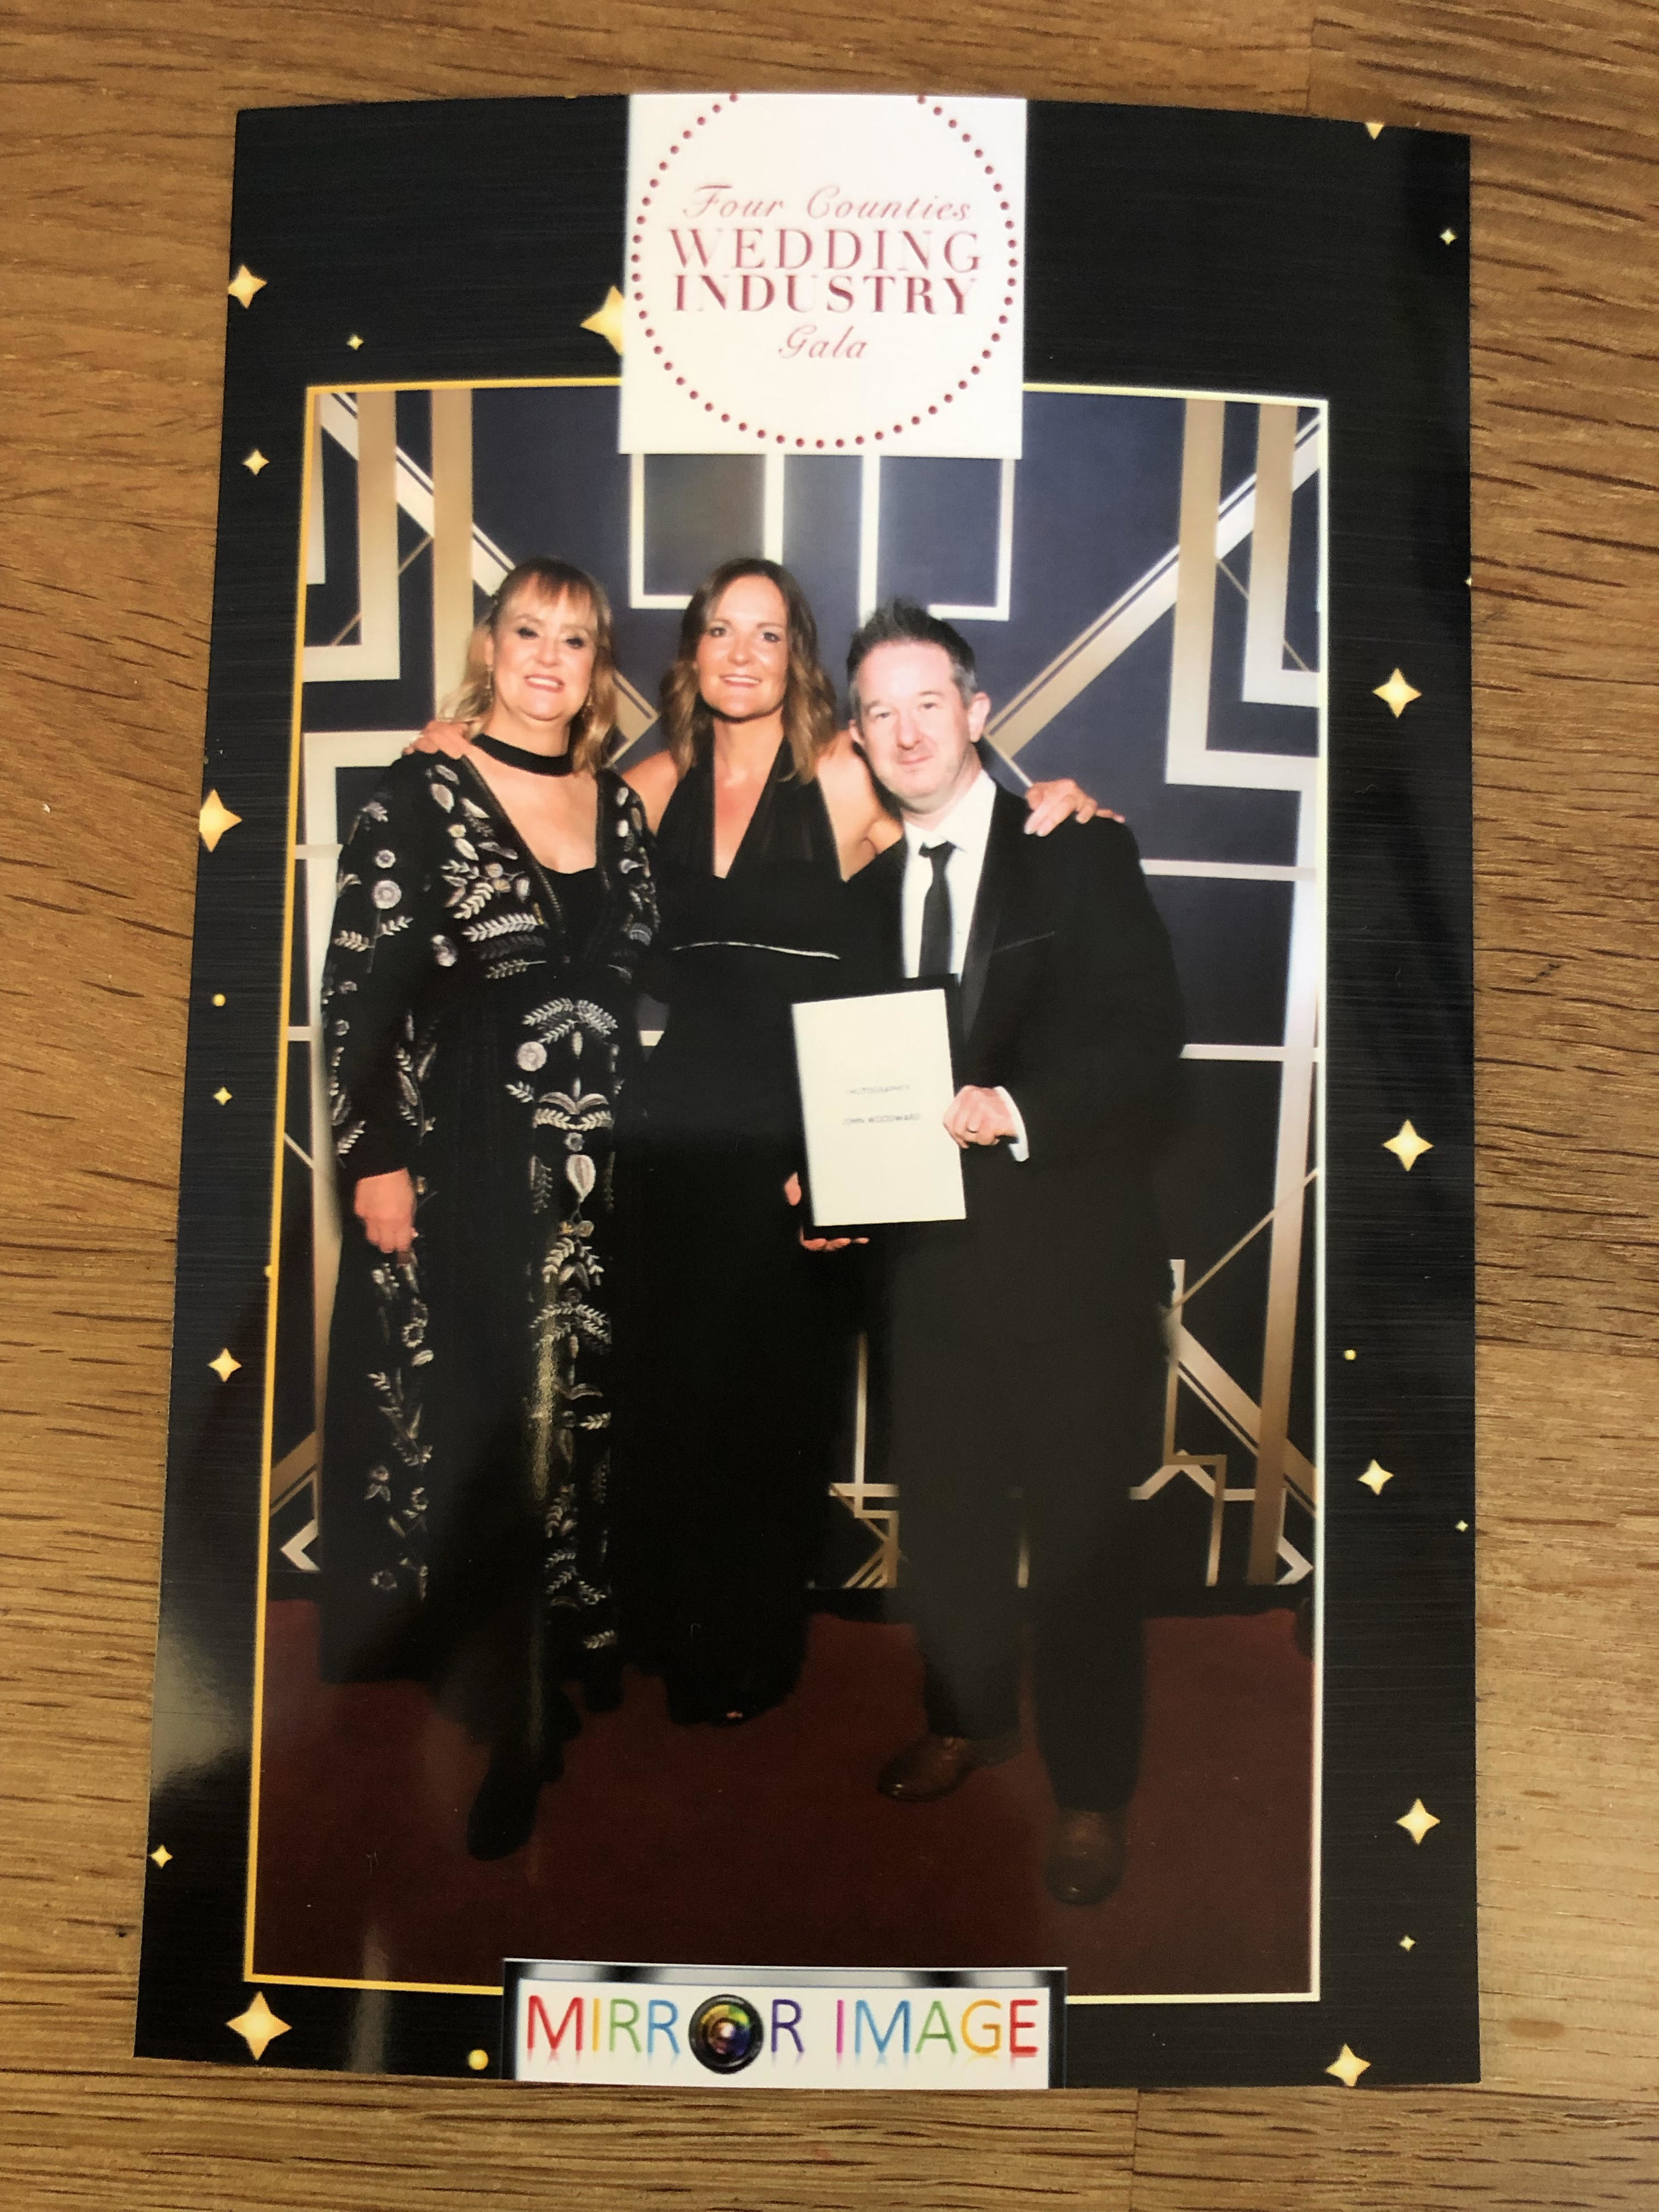 Left  Tracy Butterfield, founder of the Four Counties Wedding Awards and many other things,  Centre  Teresa Brooks of Teresa Brooks Coaching, one of the judging panel  Right  Me!